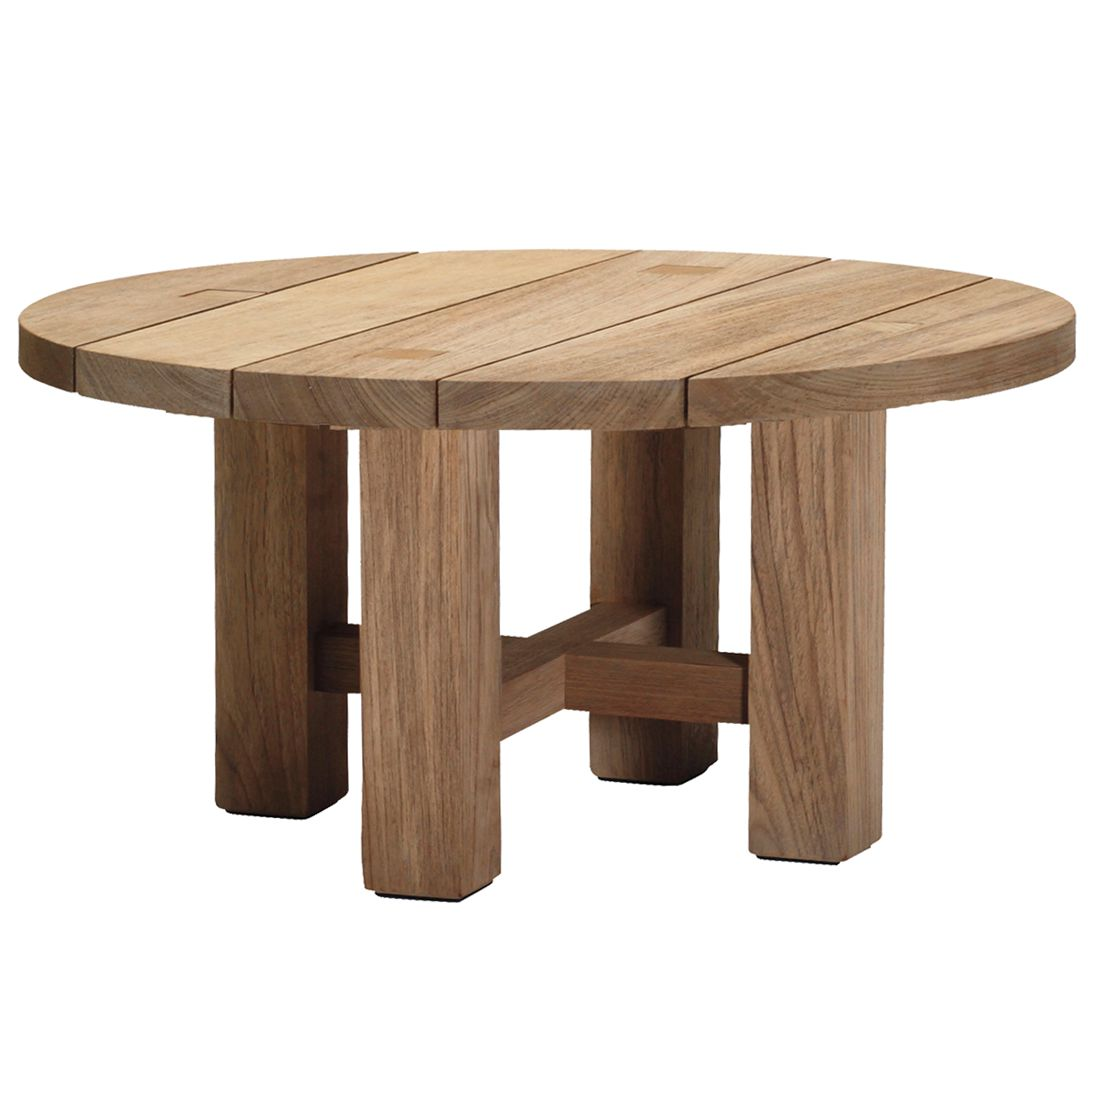 Teak Ottoman Coffee Table: Croquet Teak Round Coffee Table